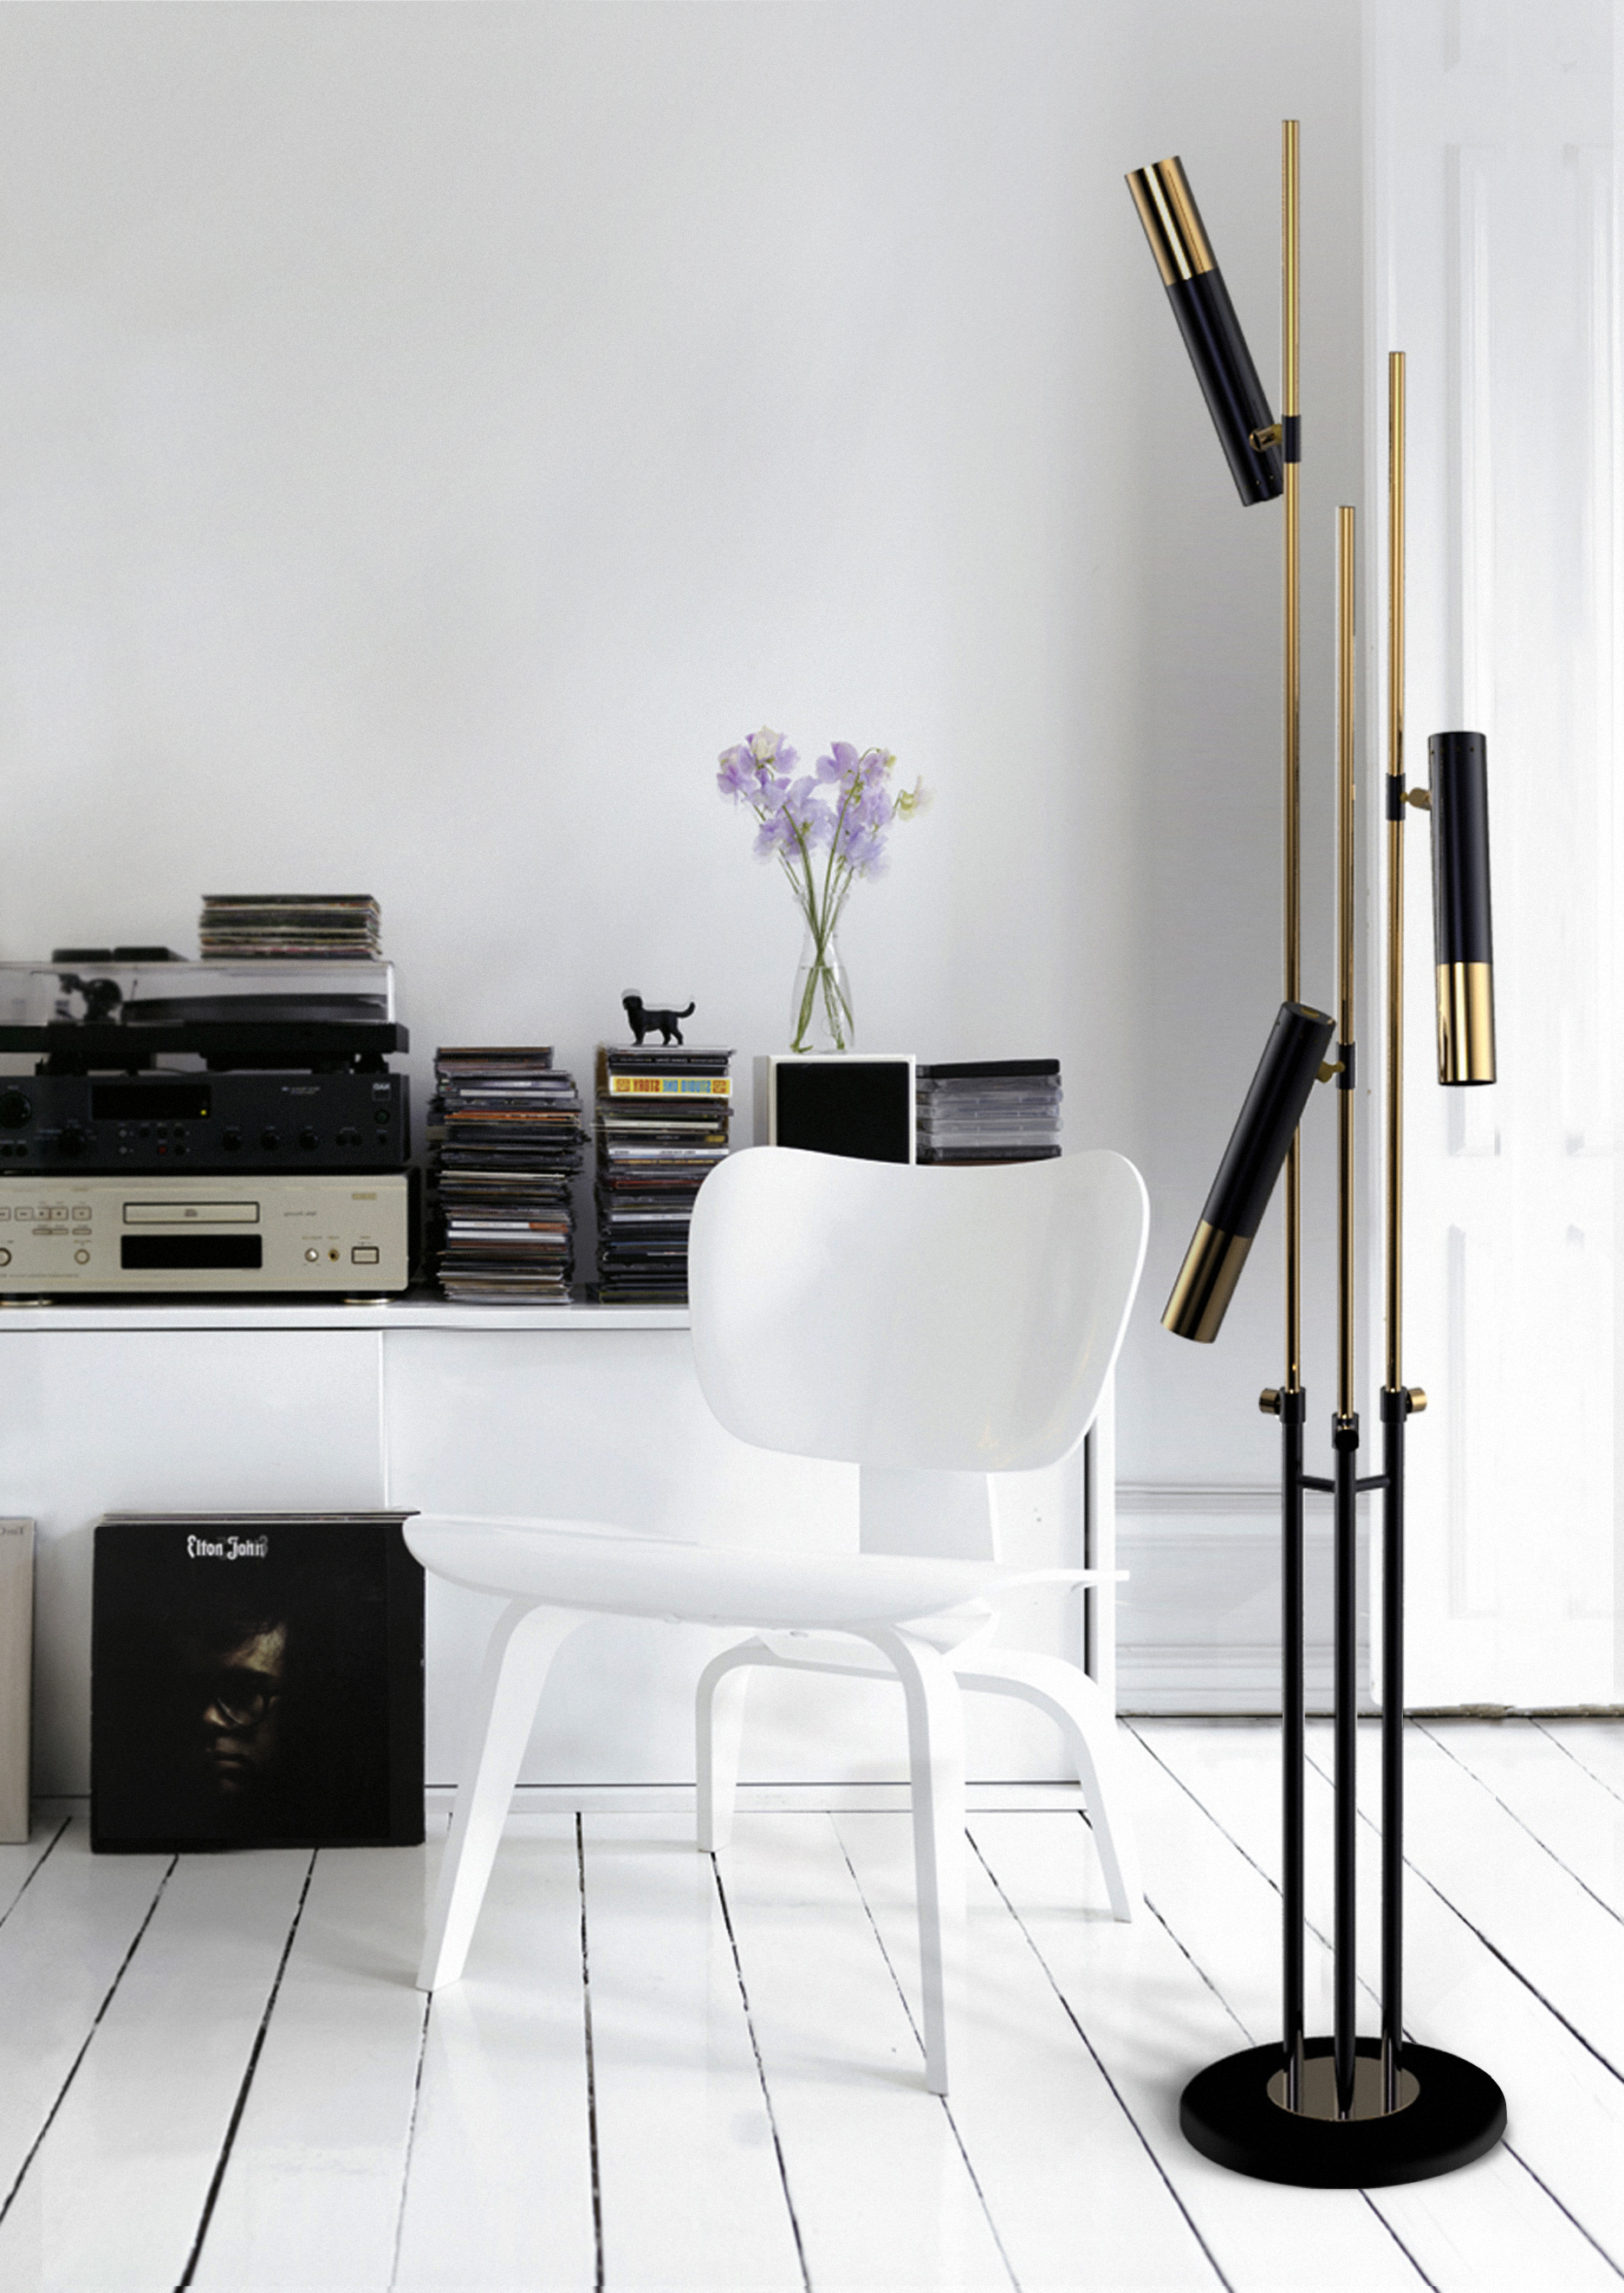 black finishes black finishes Floor Samples Gives You Floor Lamps With Black Finishes! Floor Samples Gives You Floor Lamps With Black Finishes 3